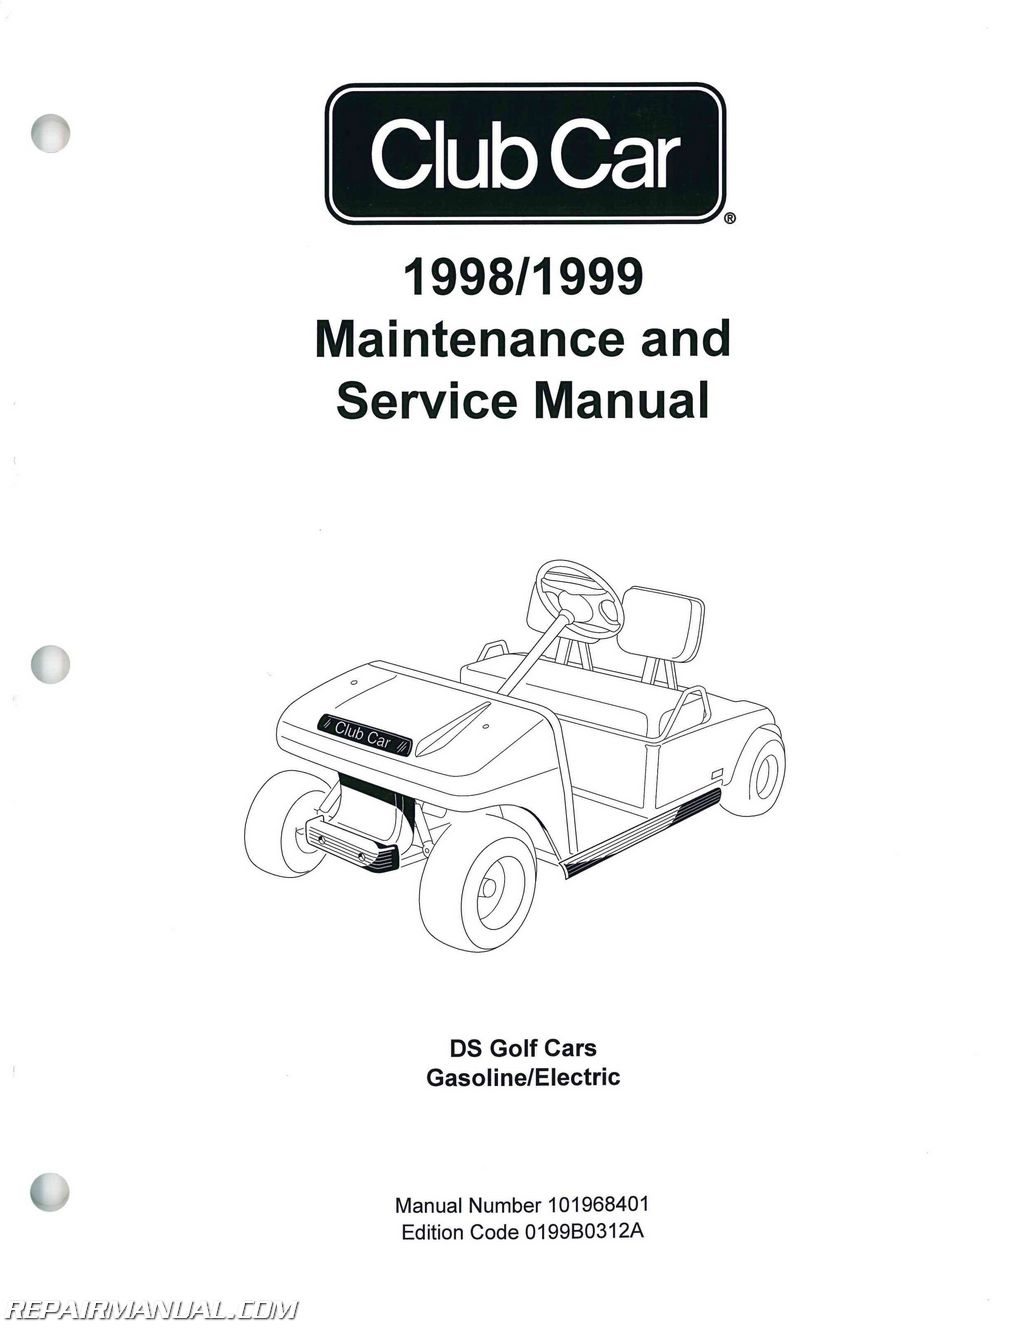 1998 1999 Club Car DS Golf Car Service Manual club car golf cart manuals repair manuals online club car turf 2 wiring diagram gas at nearapp.co